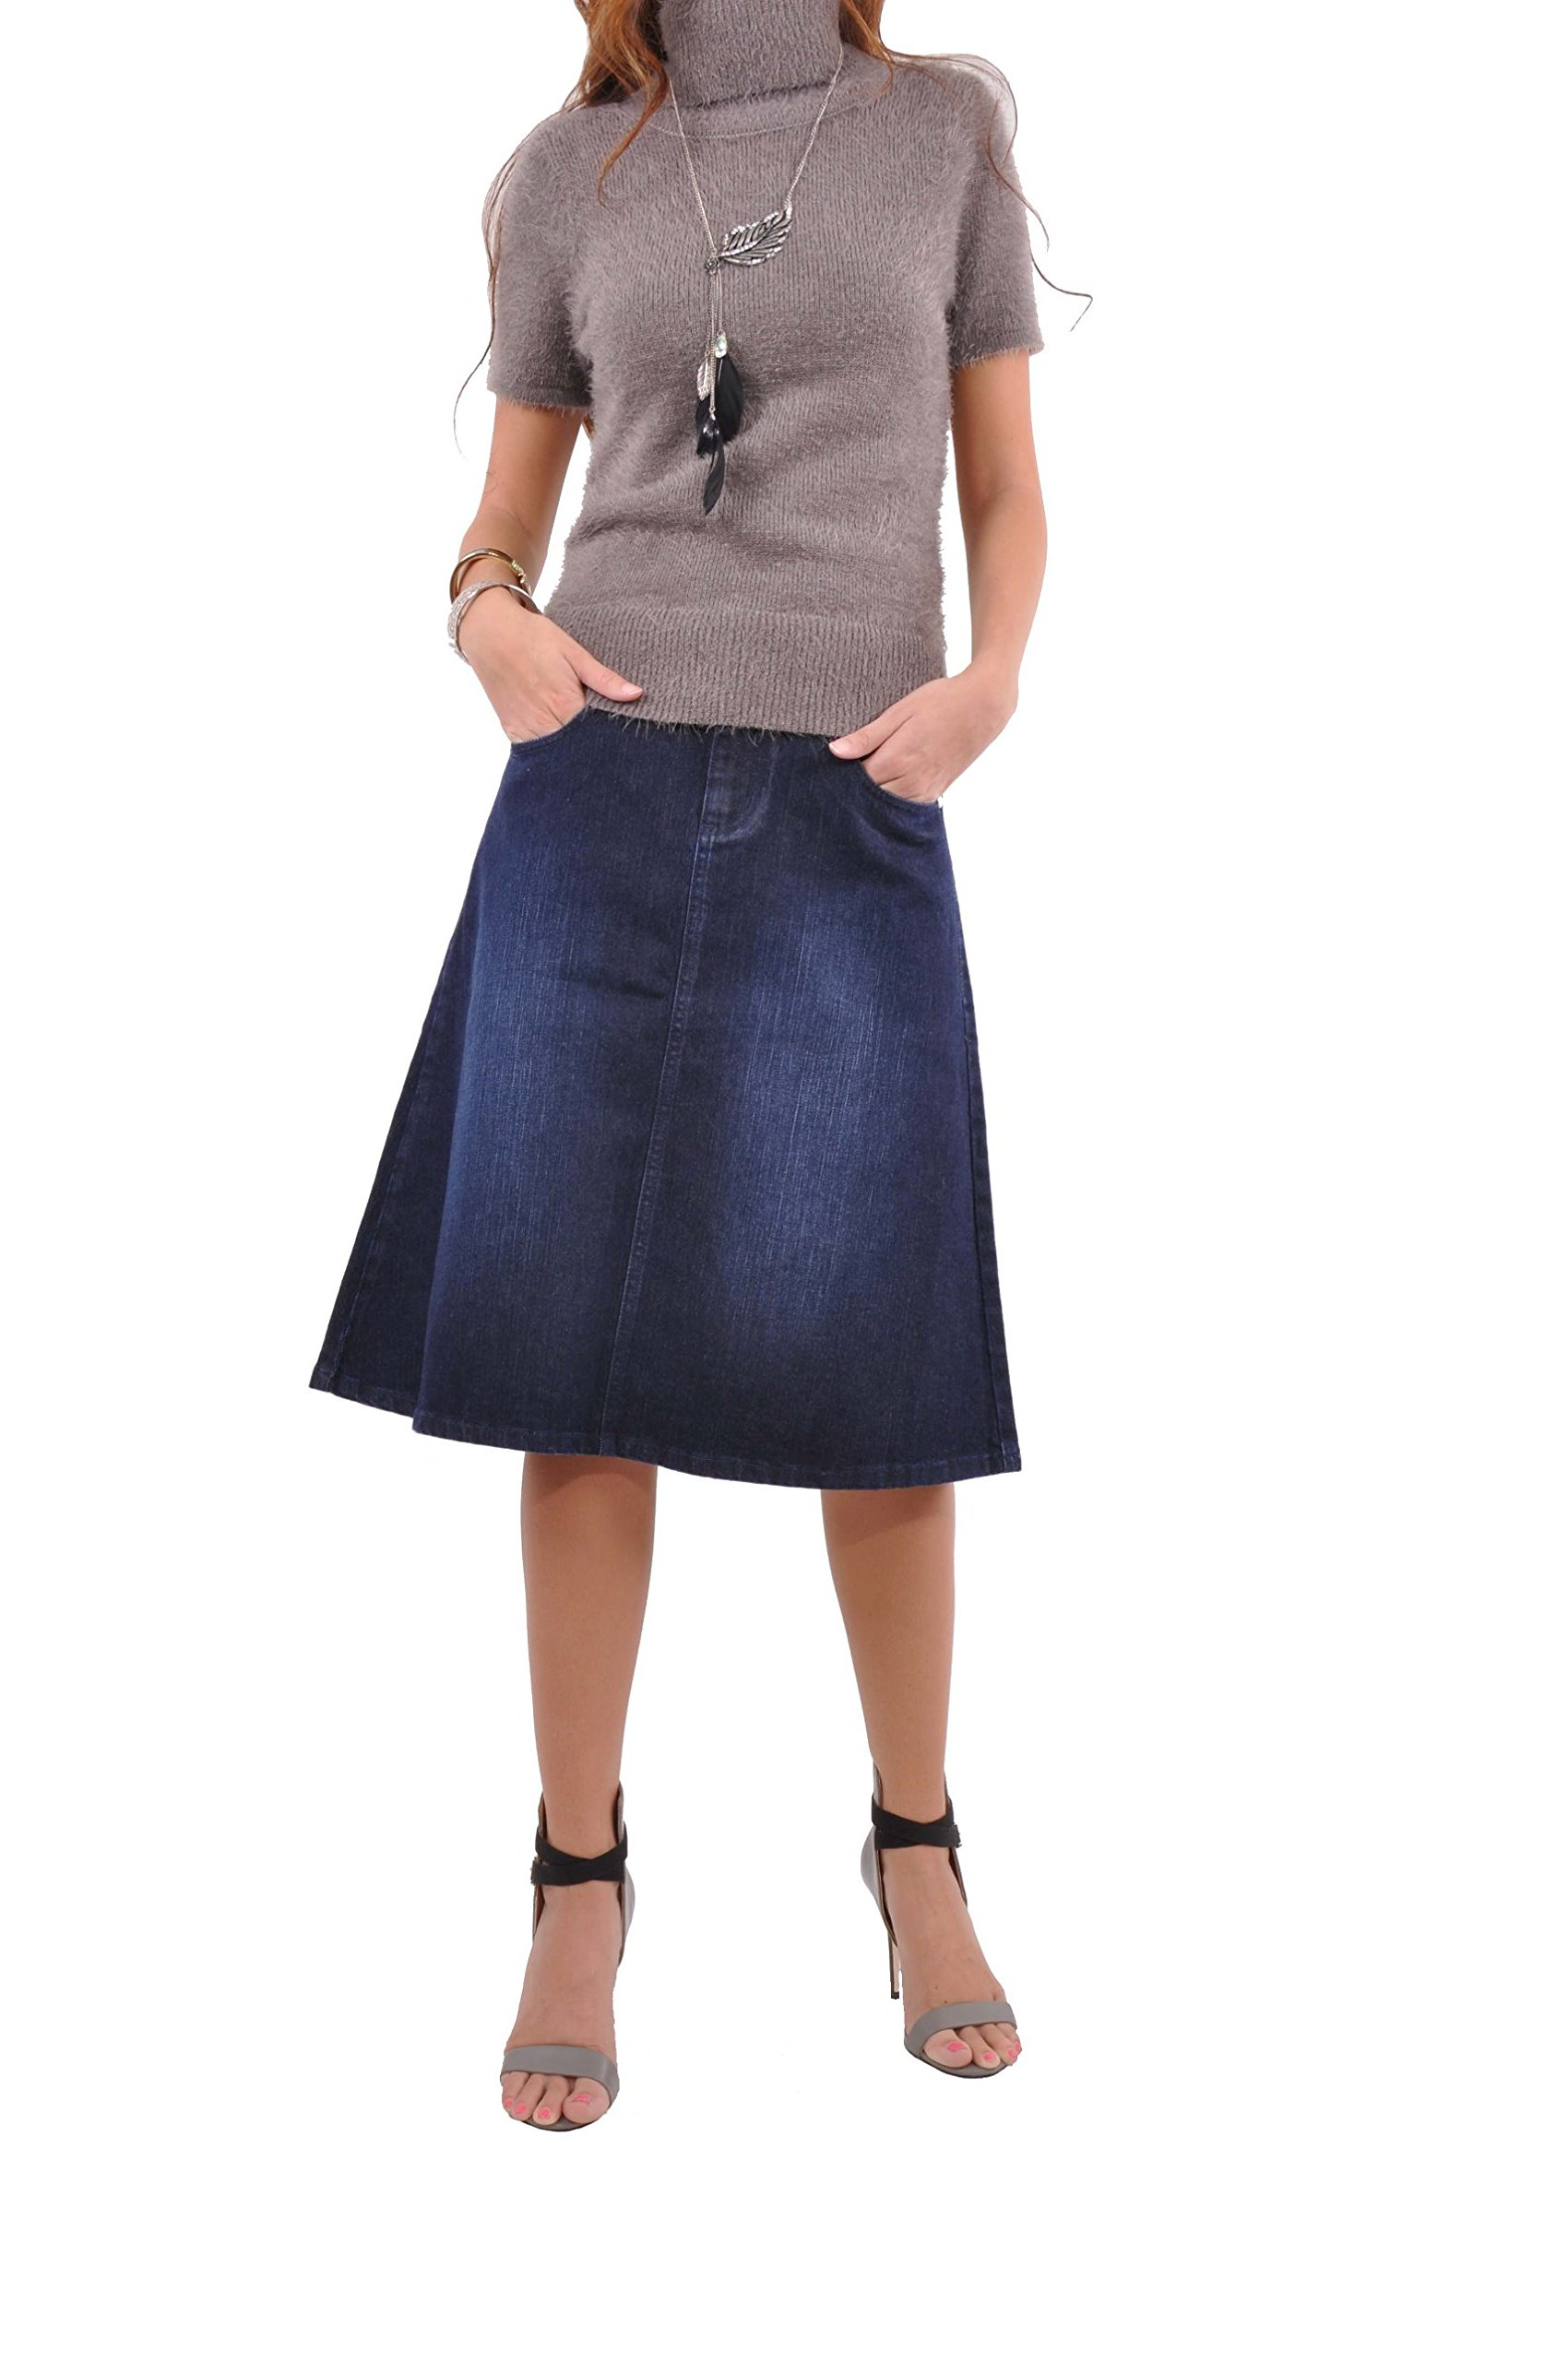 Style J Simply Me Denim Skirt-Blue-36(16) by Style J